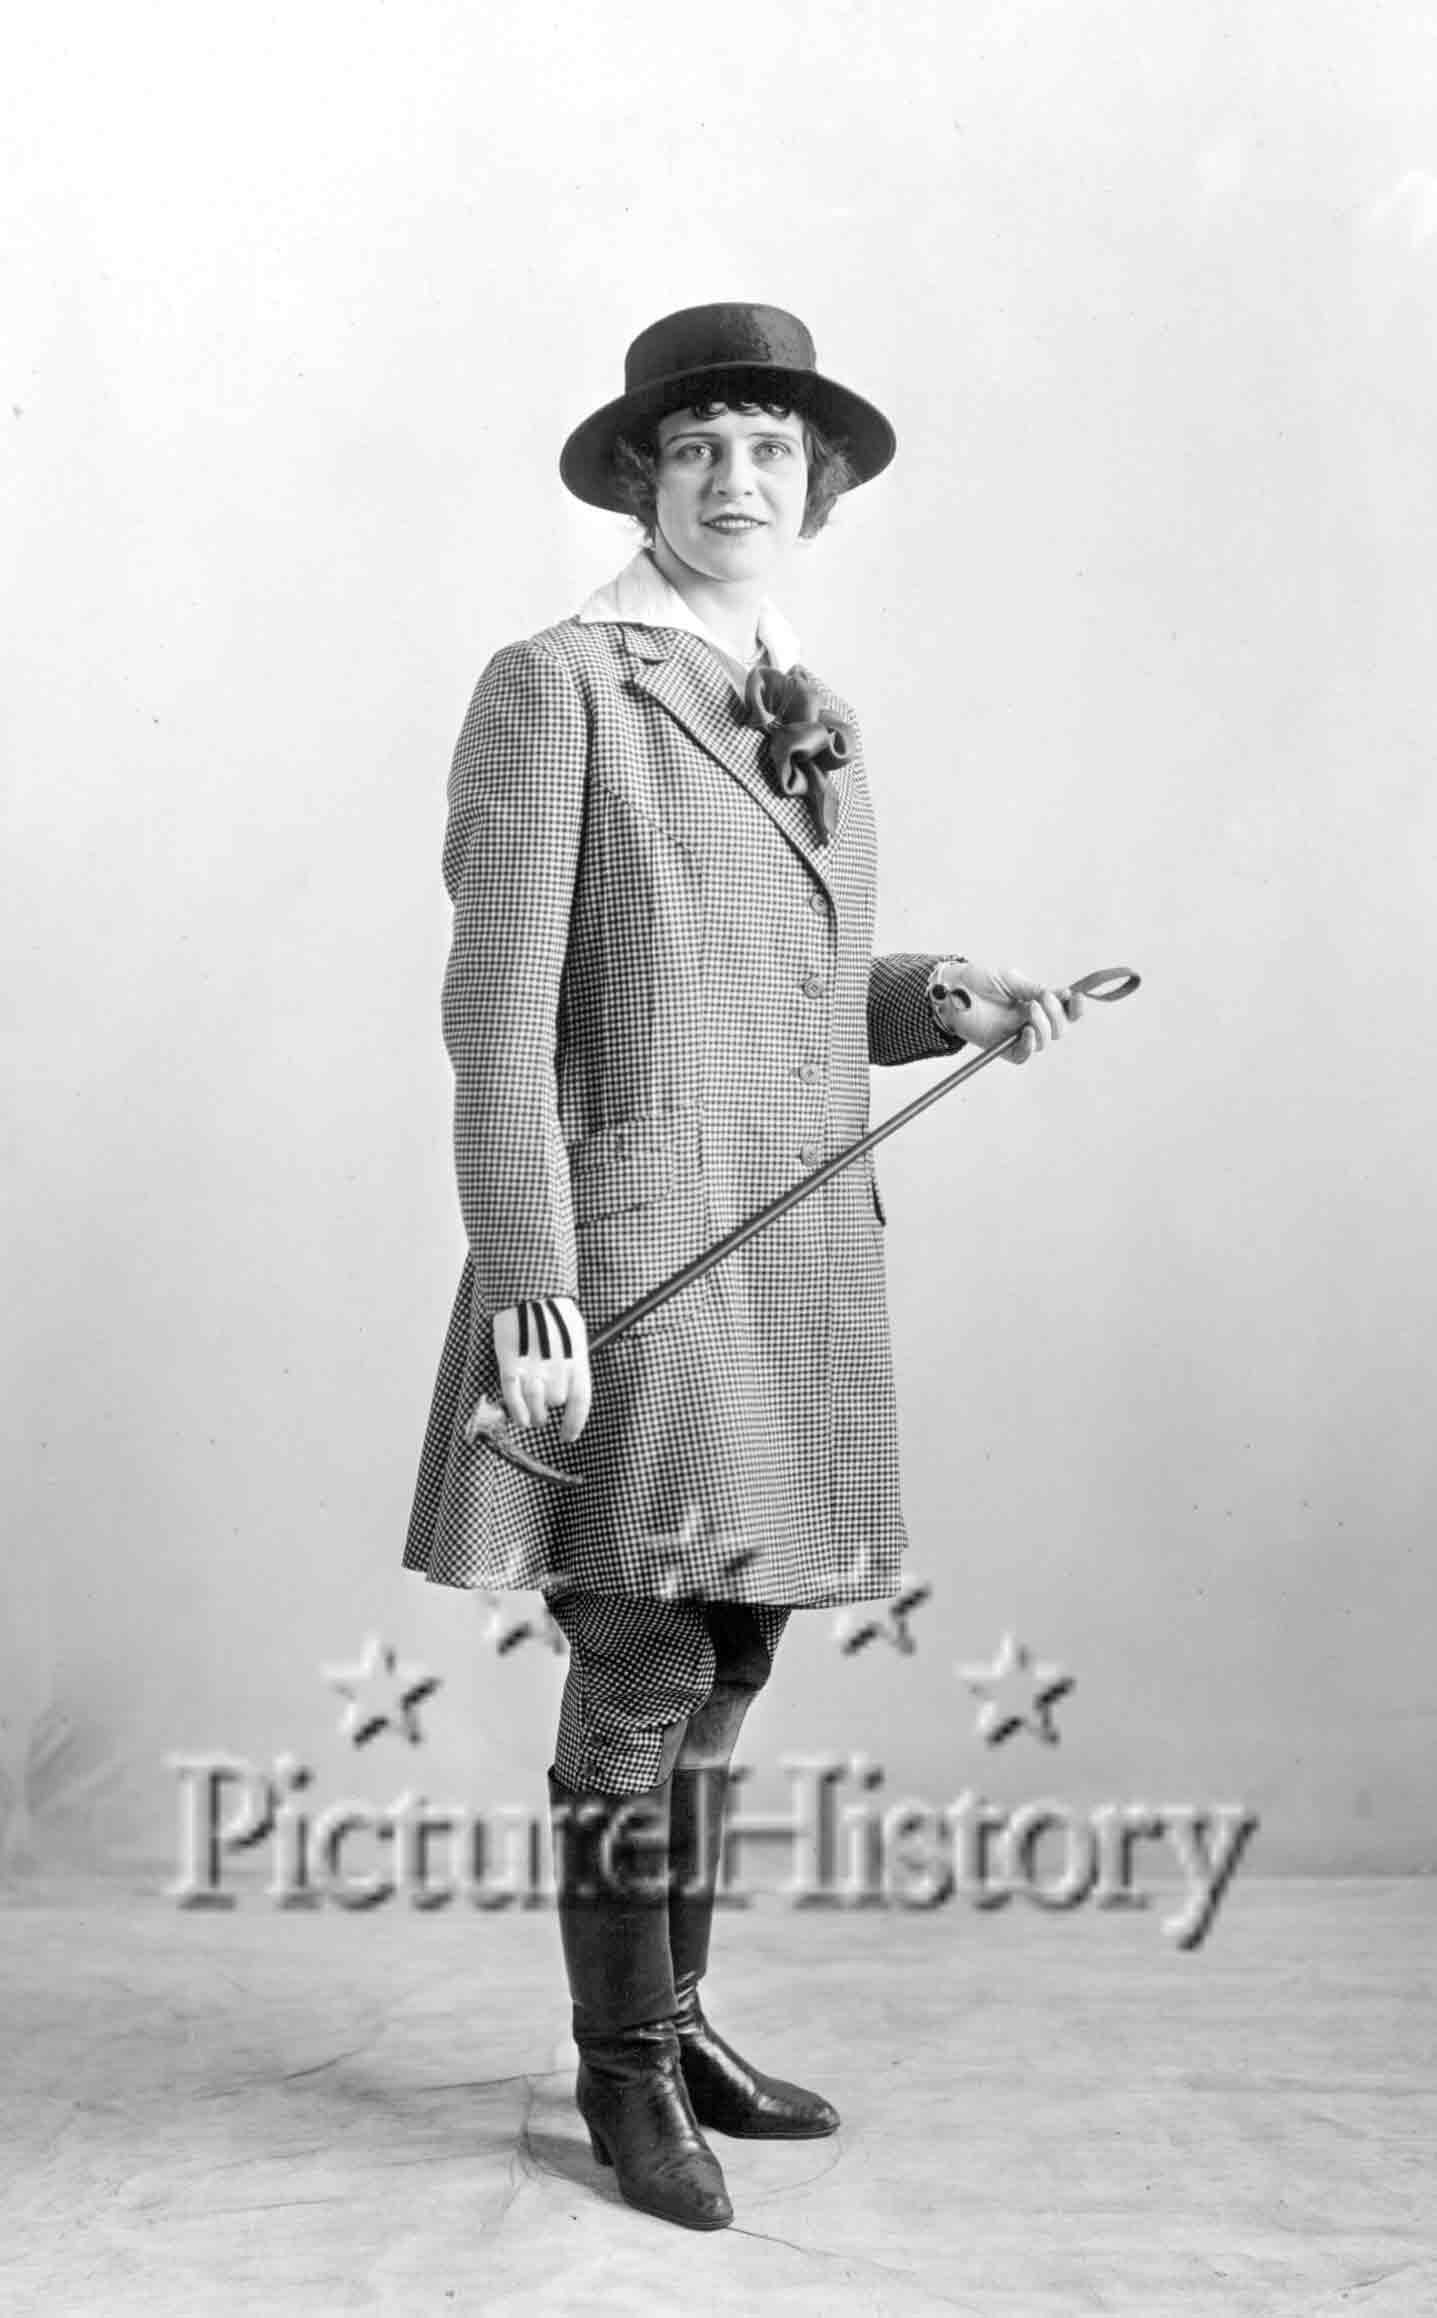 Communication on this topic: Ethel Teare, helen-gibson/